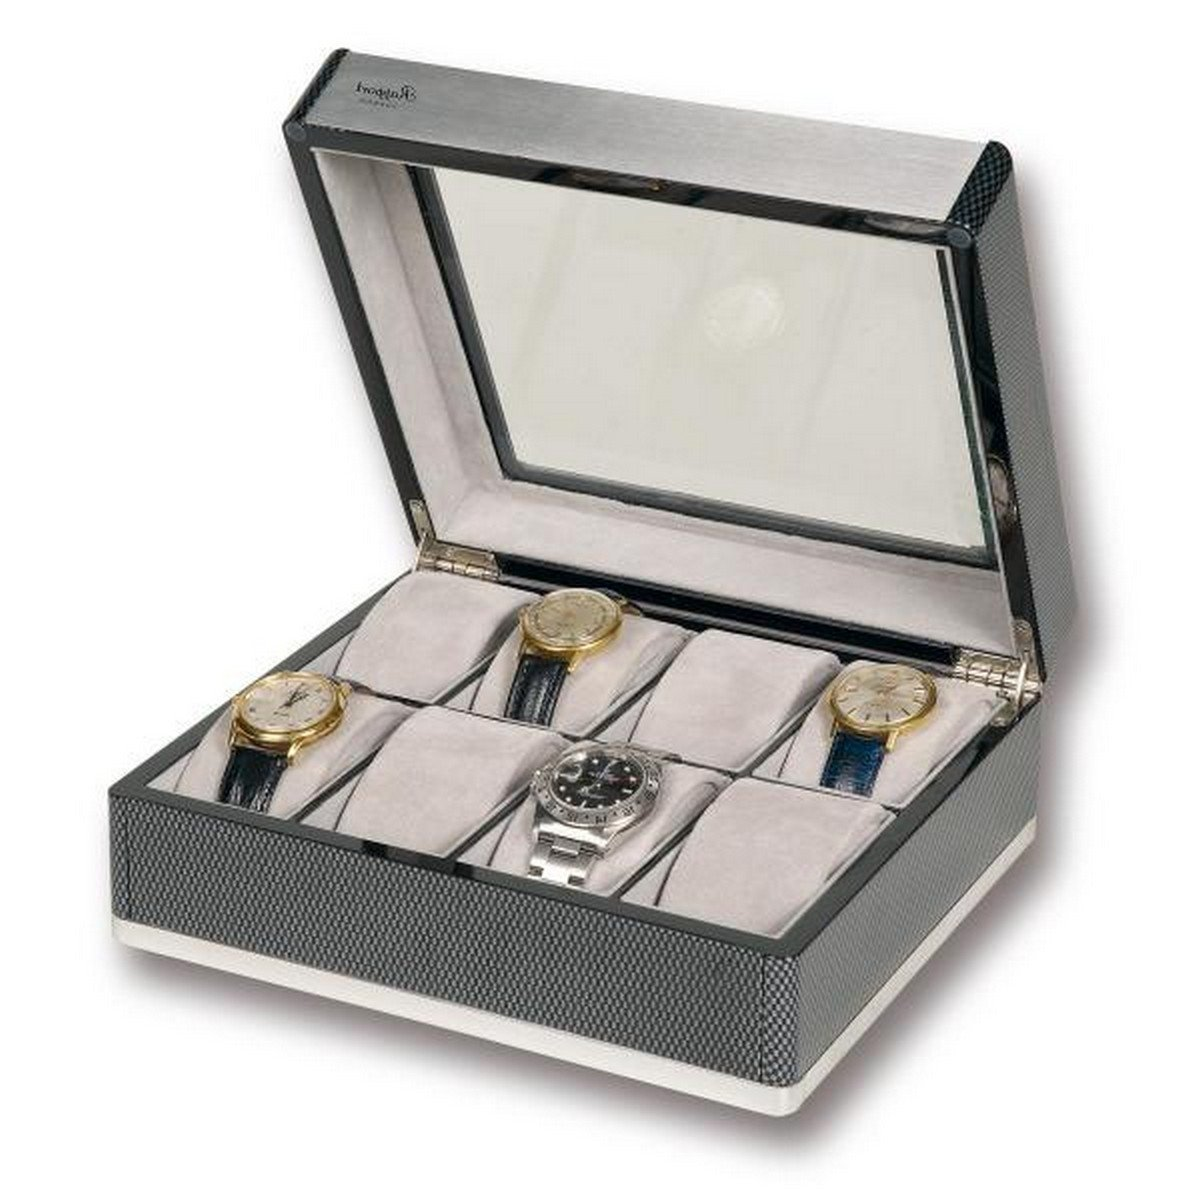 Rapport London F3 Carbon Fiber Collector 8 Watch Box w/ Glass Lid